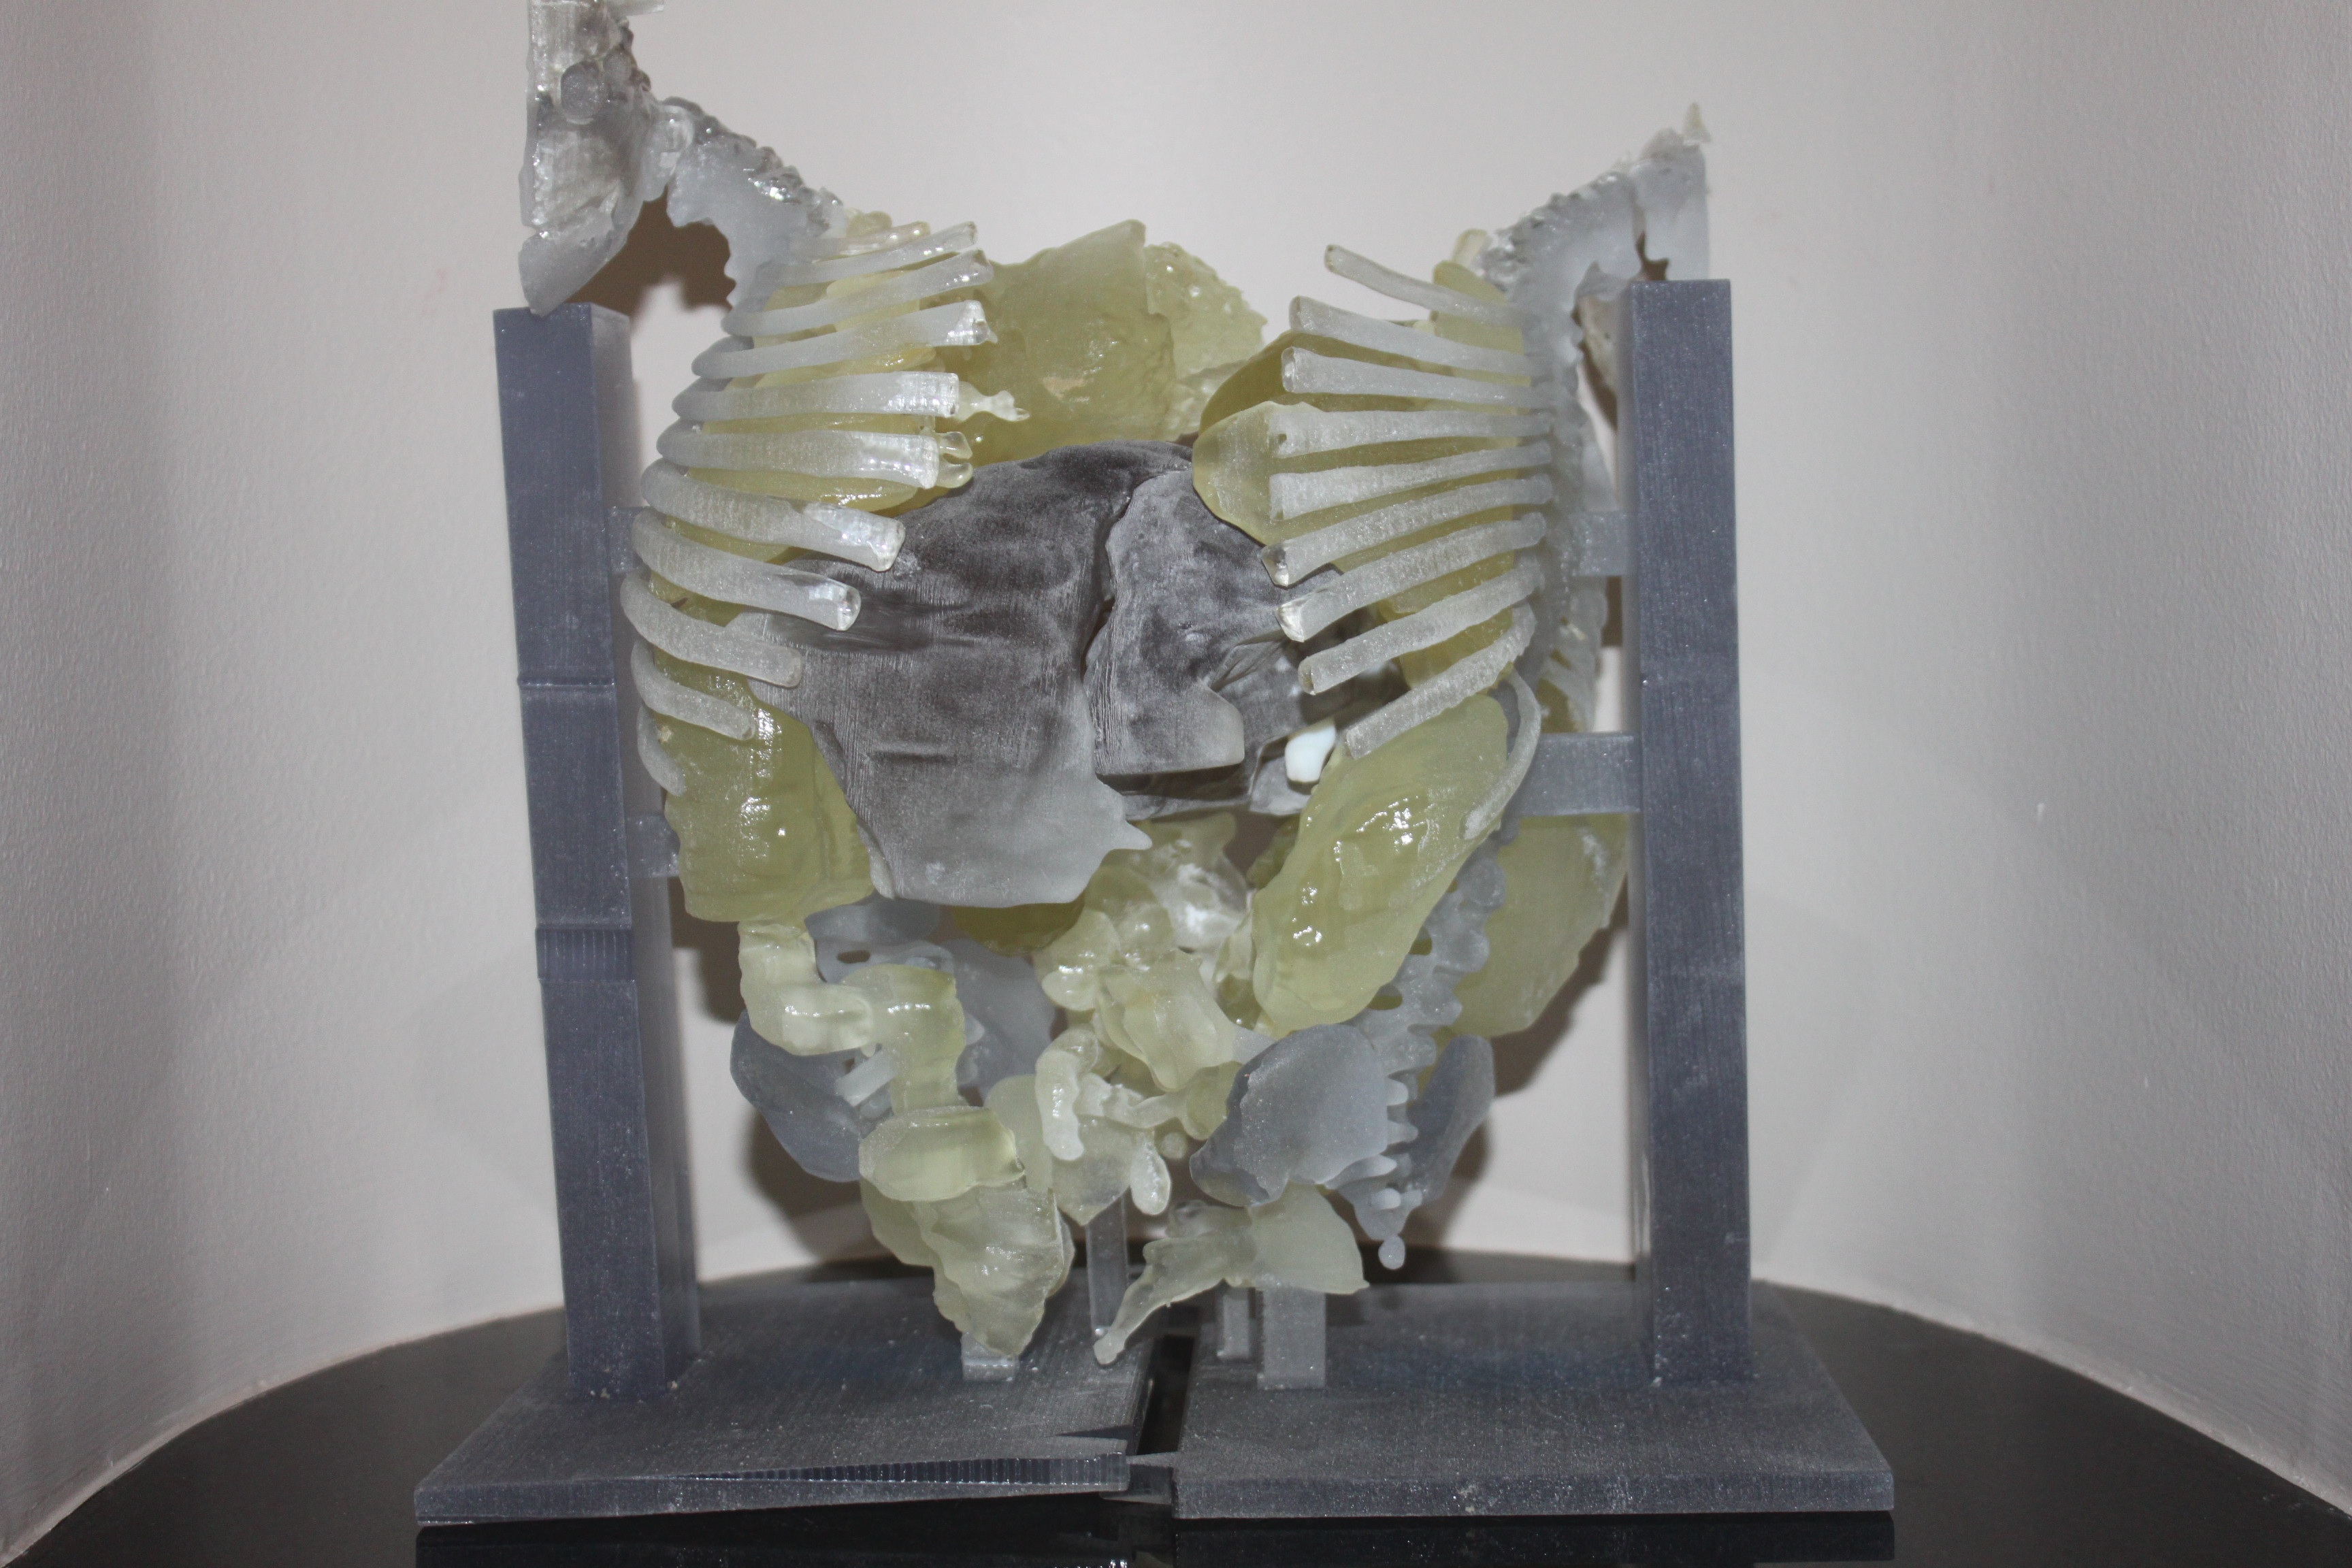 3-D print, conjoined twins, RSNA 2015